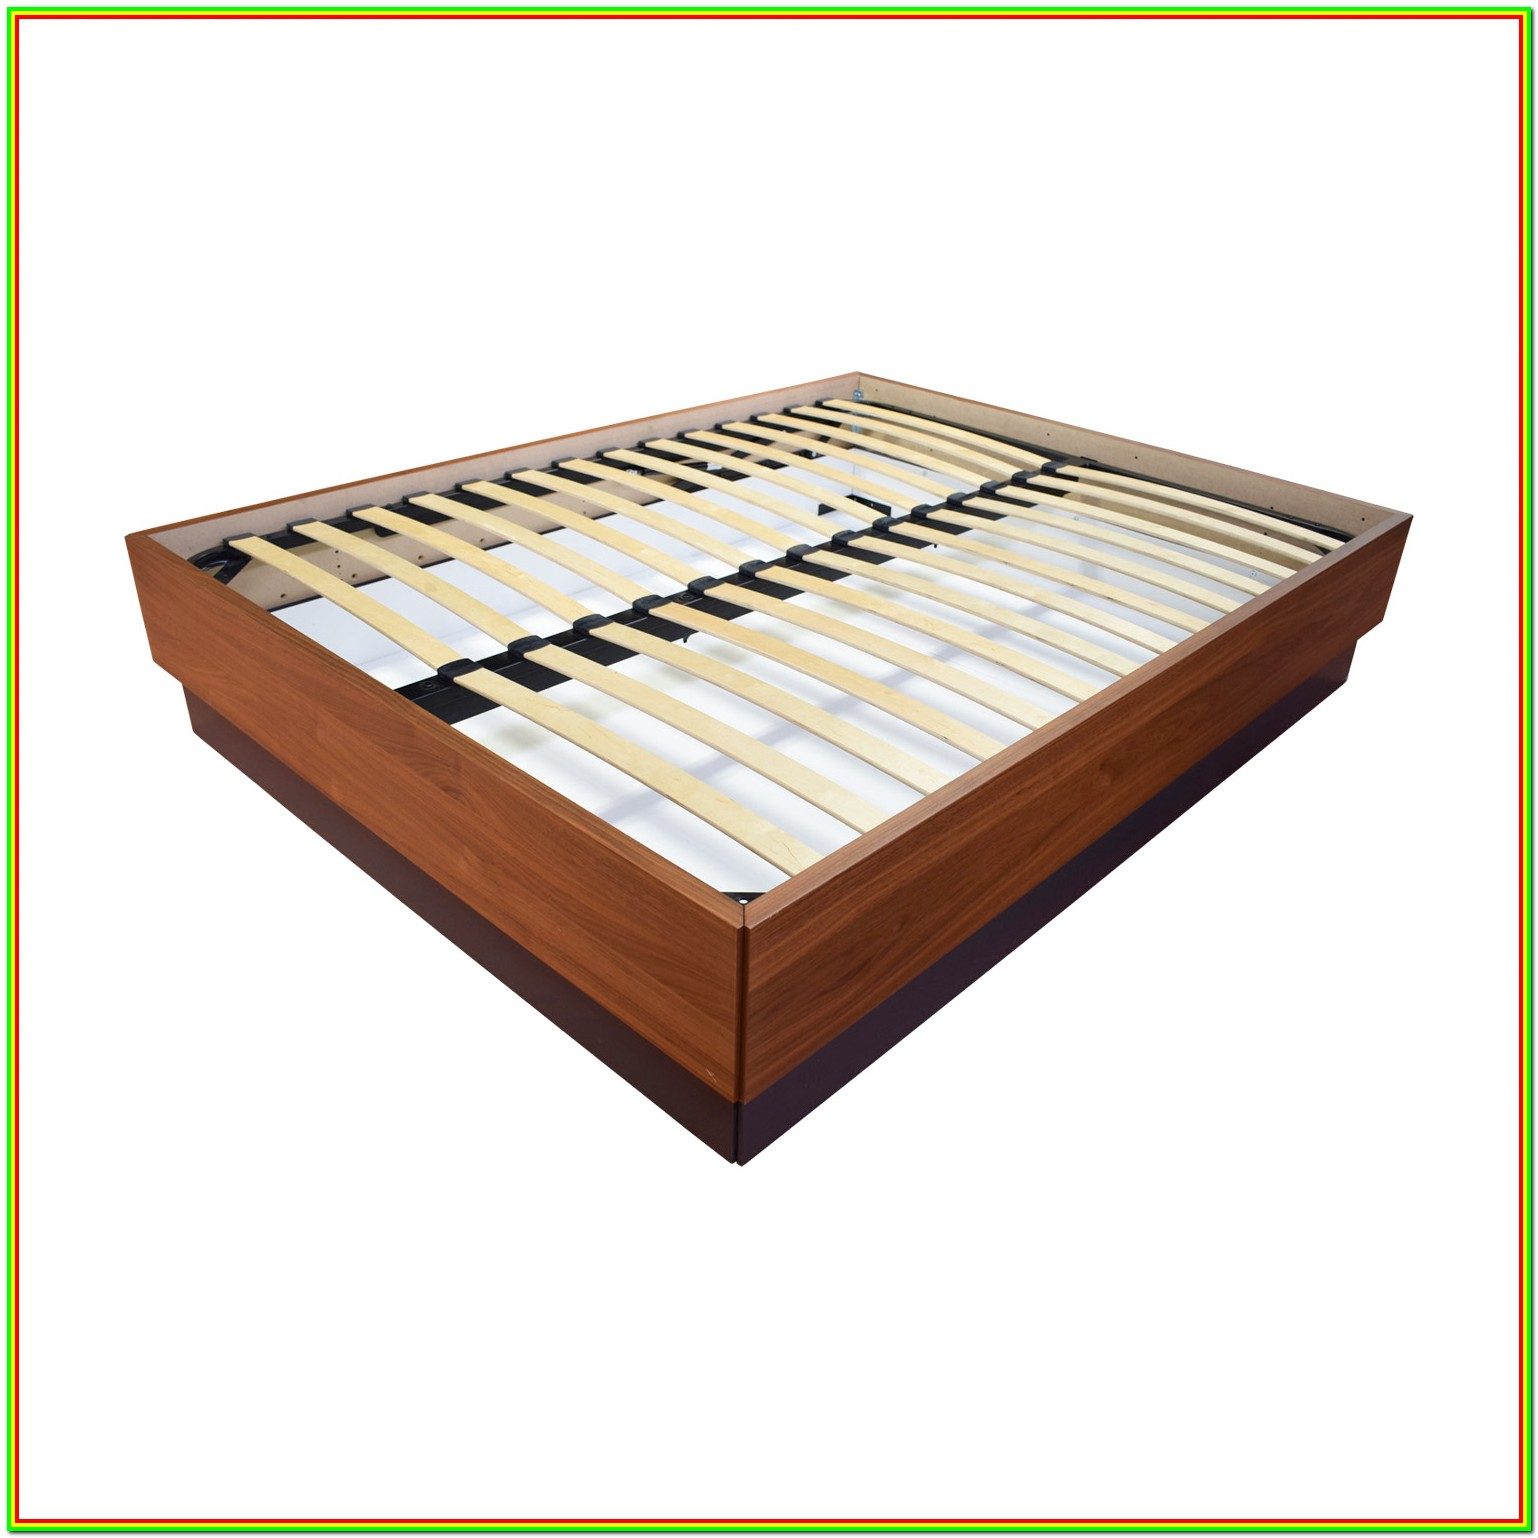 Wood Platform Bed Frame Queen With Storage